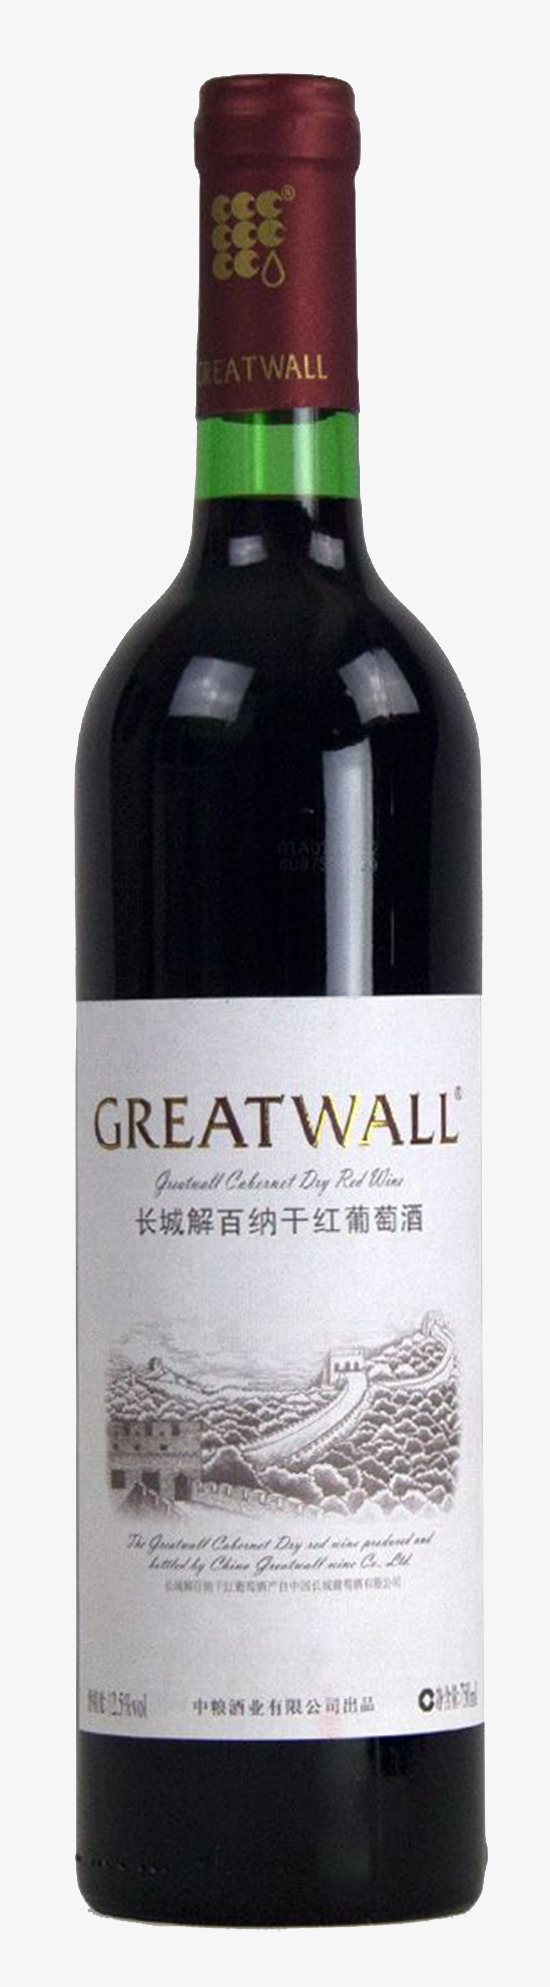 hight resolution of the great wall red wine wine wine clipart wine wine bottle png image